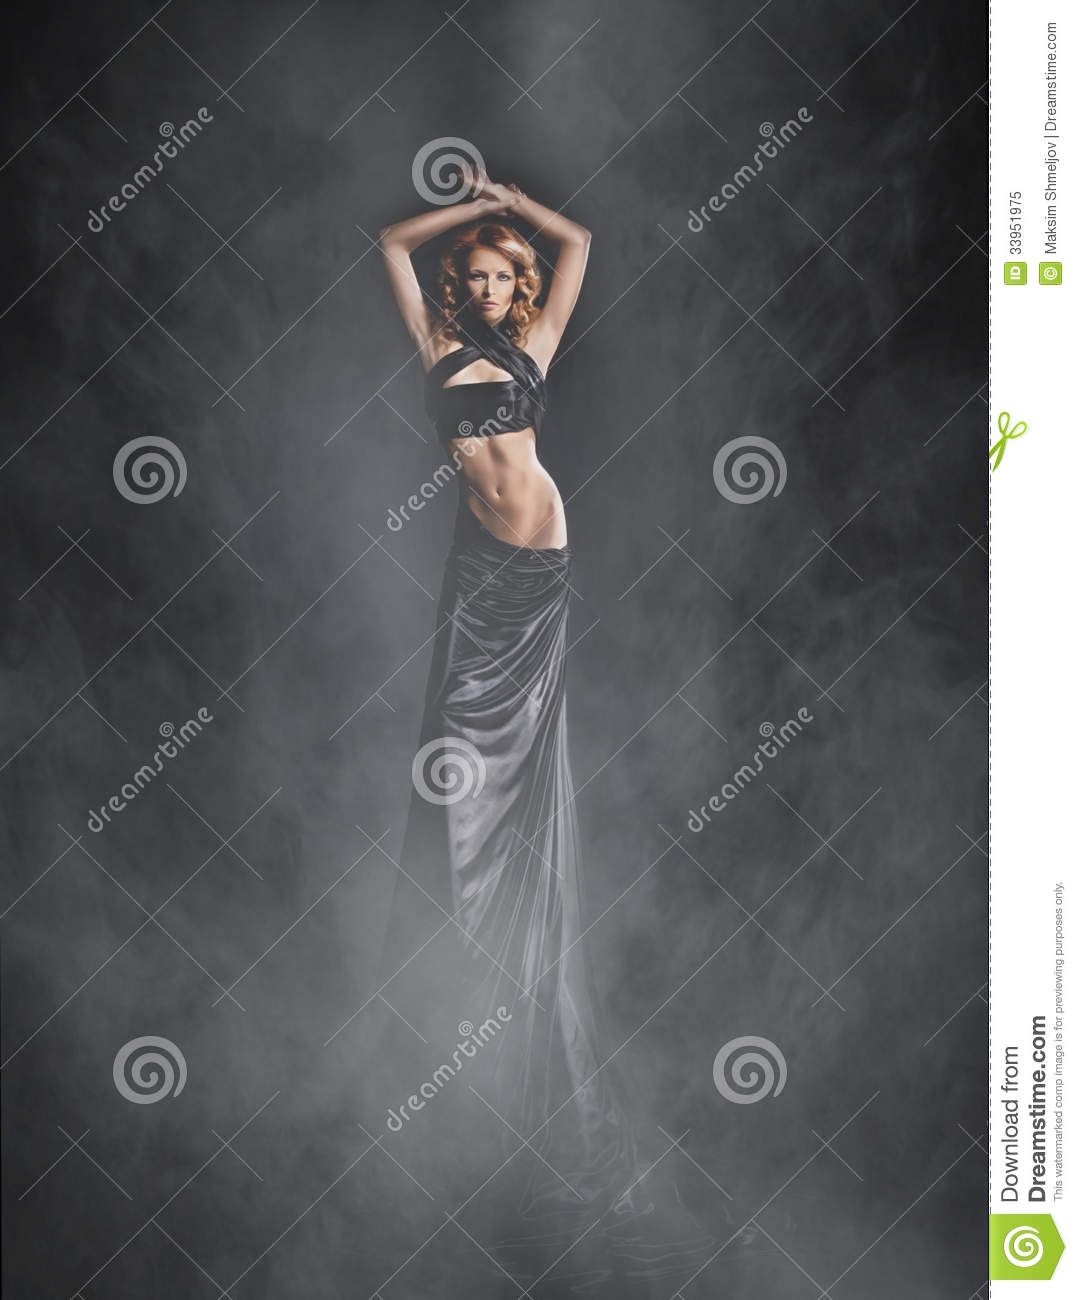 A young woman in a black dress on a foggy background